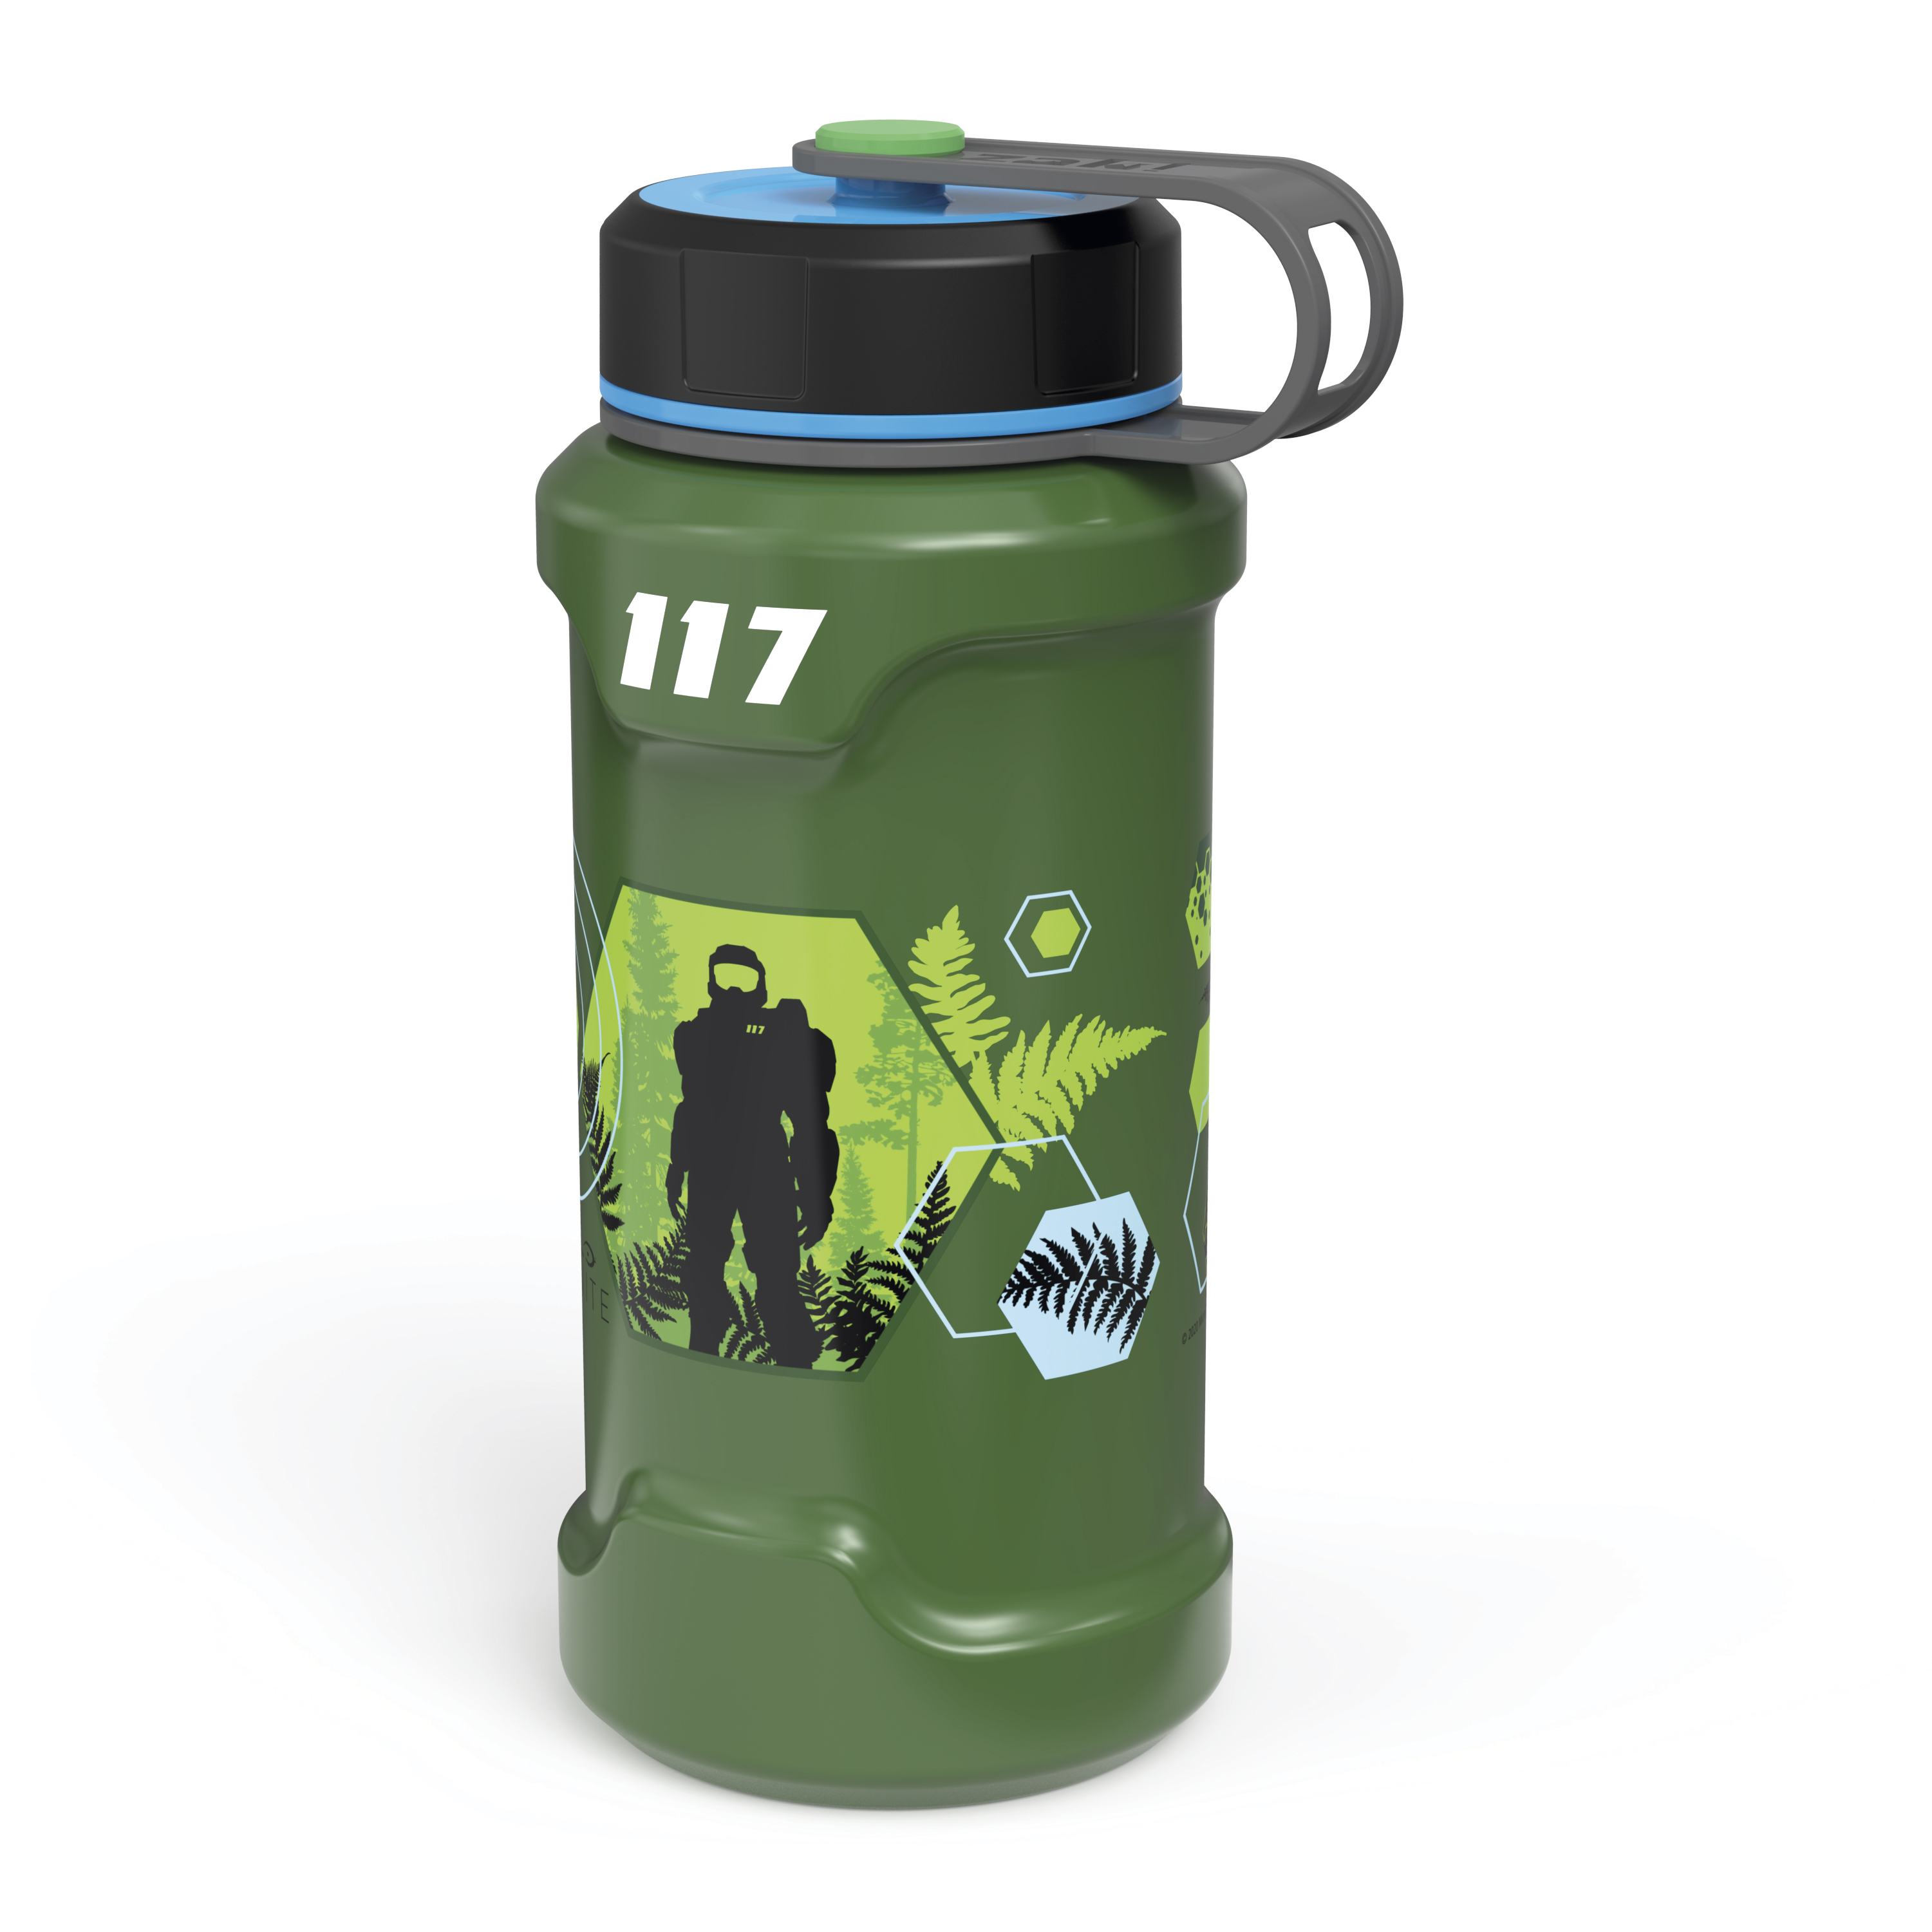 XBOX 24 ounce Stainless Steel Insulated Water Bottle, Halo slideshow image 5